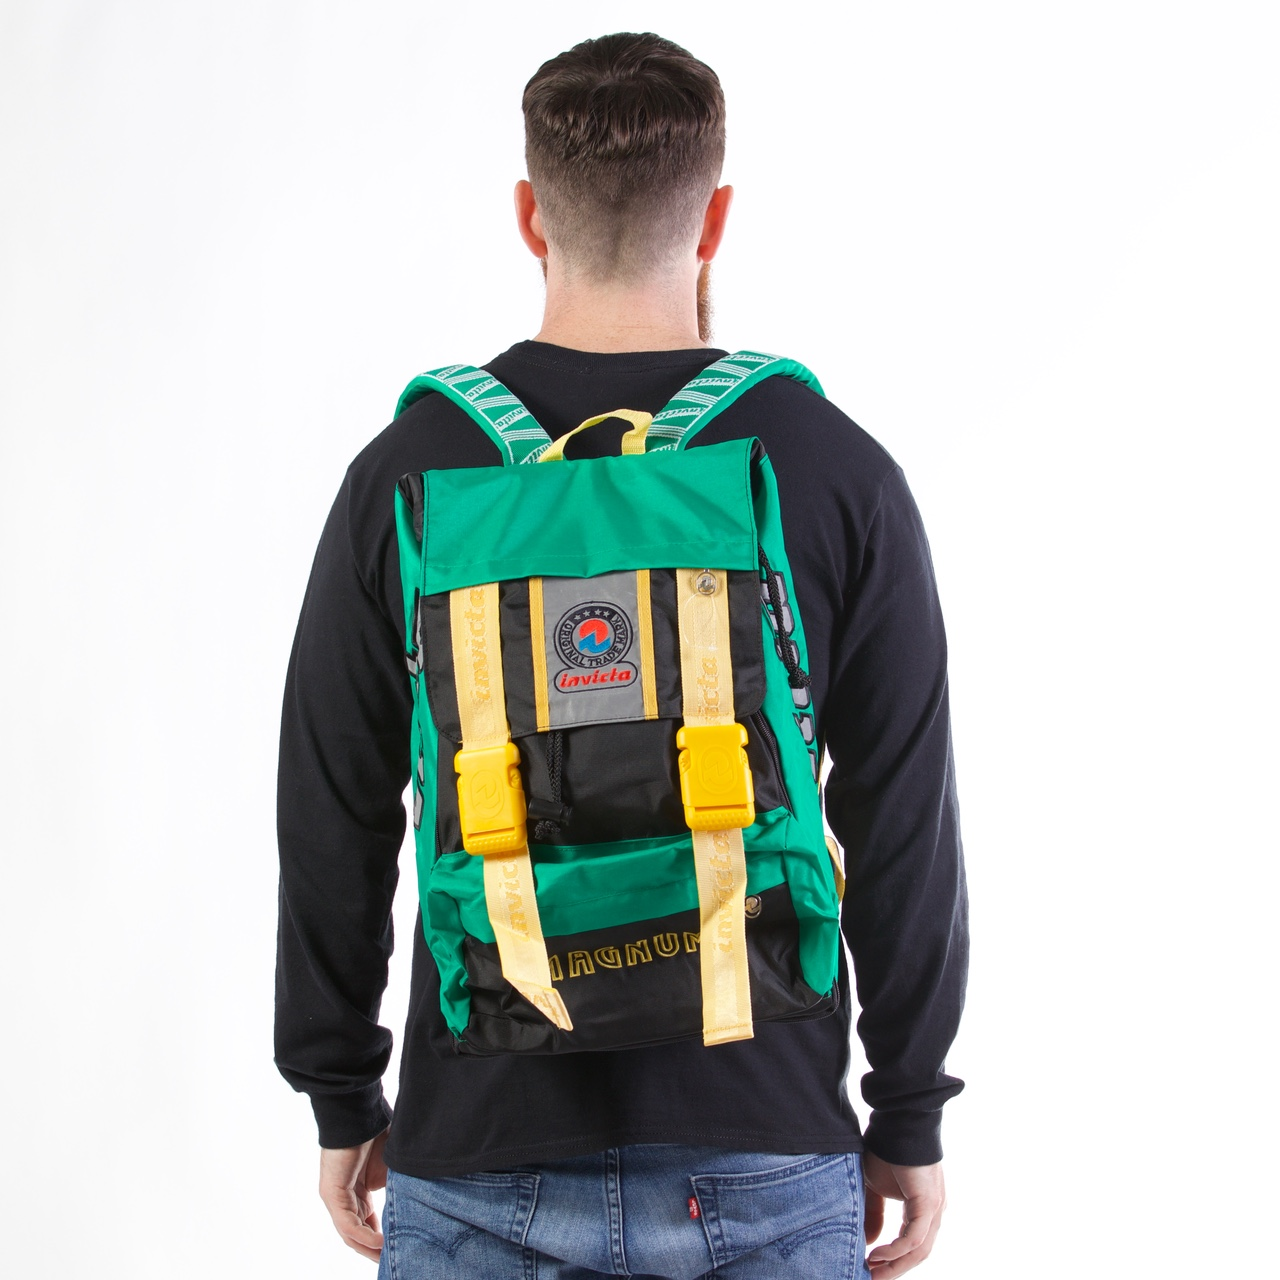 buy best cute exceptional range of styles and colors Vintage Invicta backpack. This is a dead stock item... - Depop